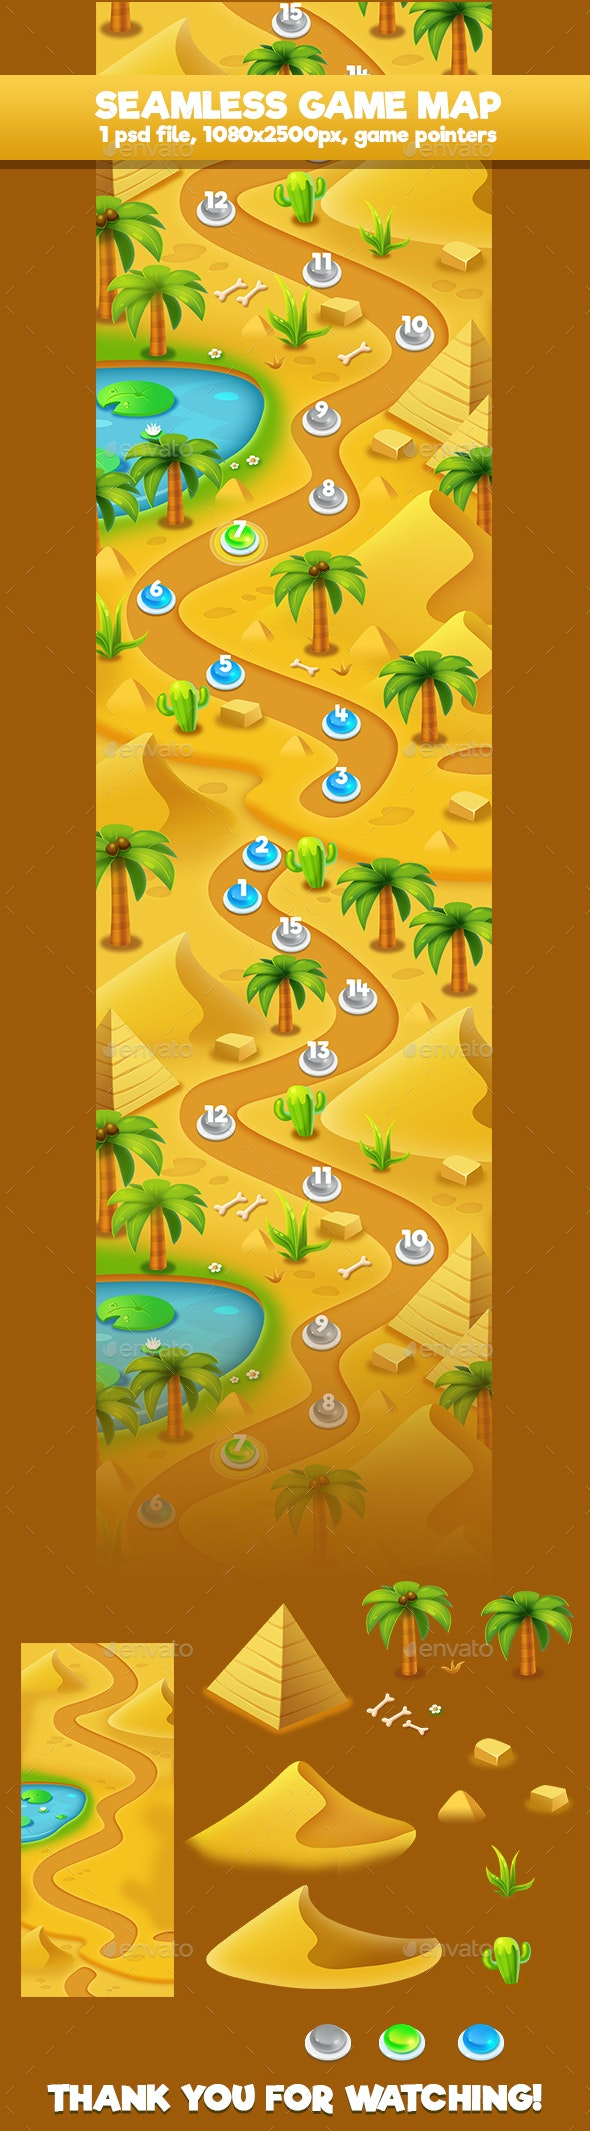 Seamless Desert Game Map - Backgrounds Game Assets